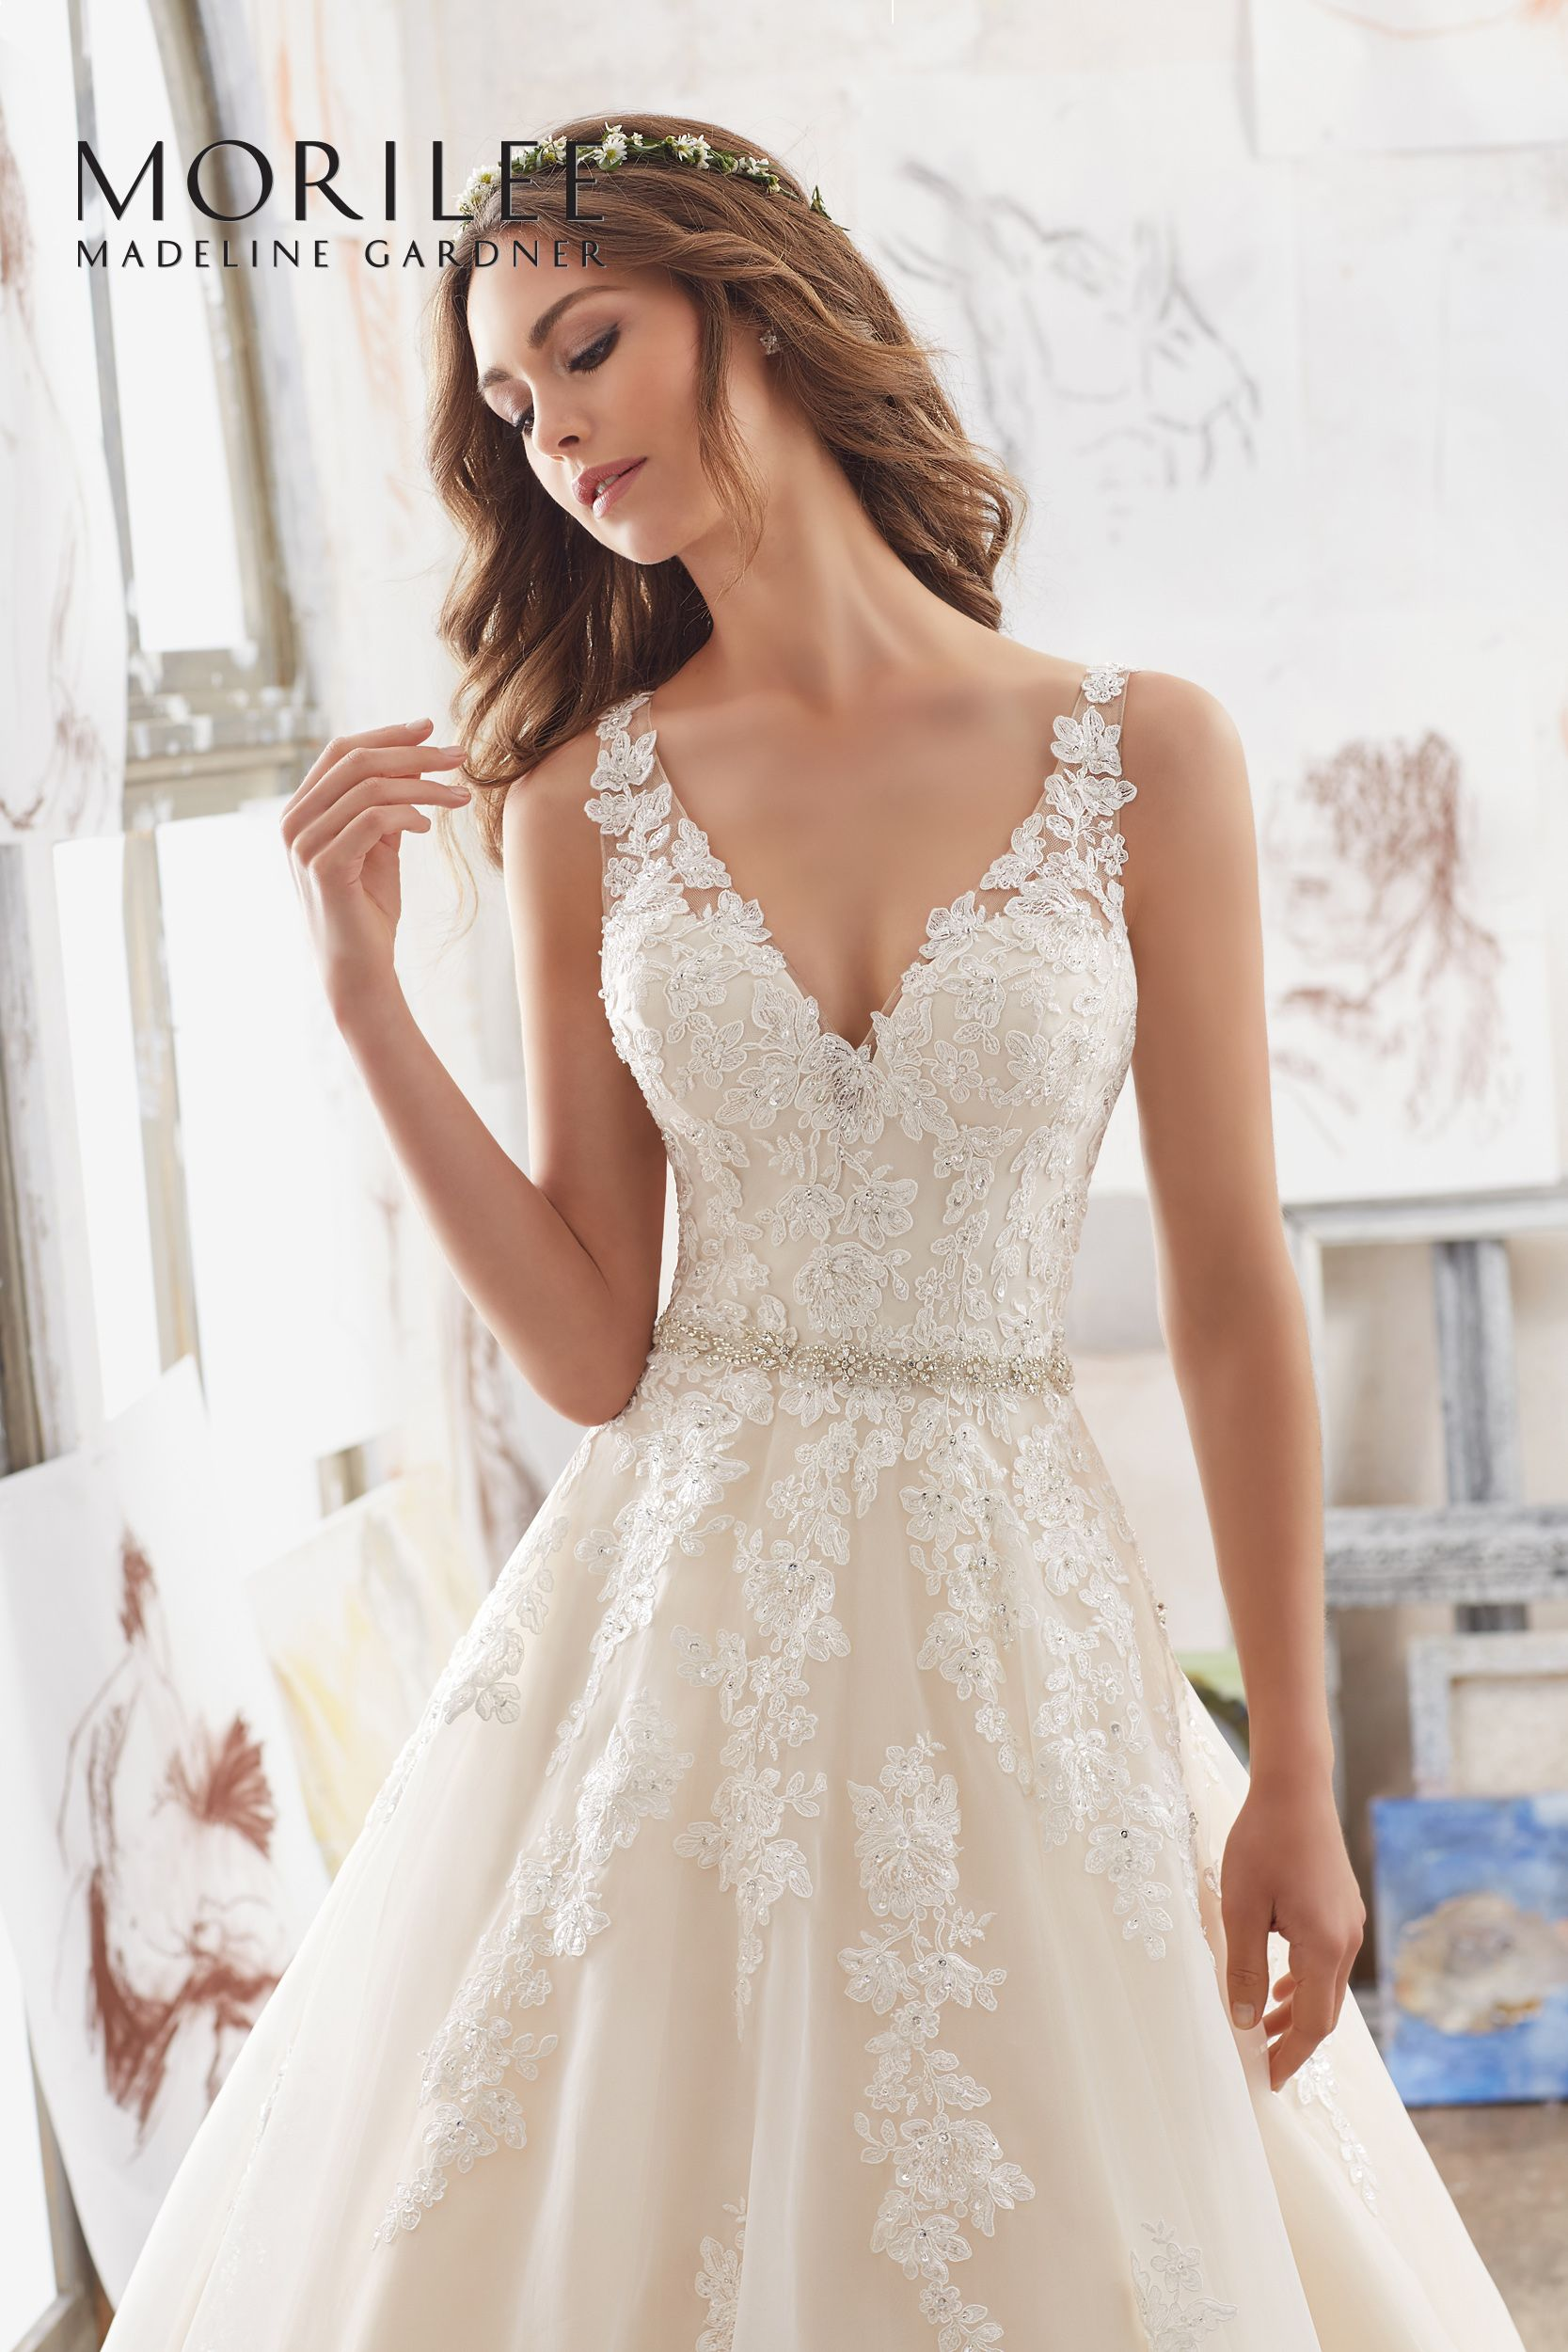 We have mori lee in store at its a date the tuxedo shop https we have mori lee in store at its a date the tuxedo shop bridal wedding dressesdesigner ombrellifo Image collections